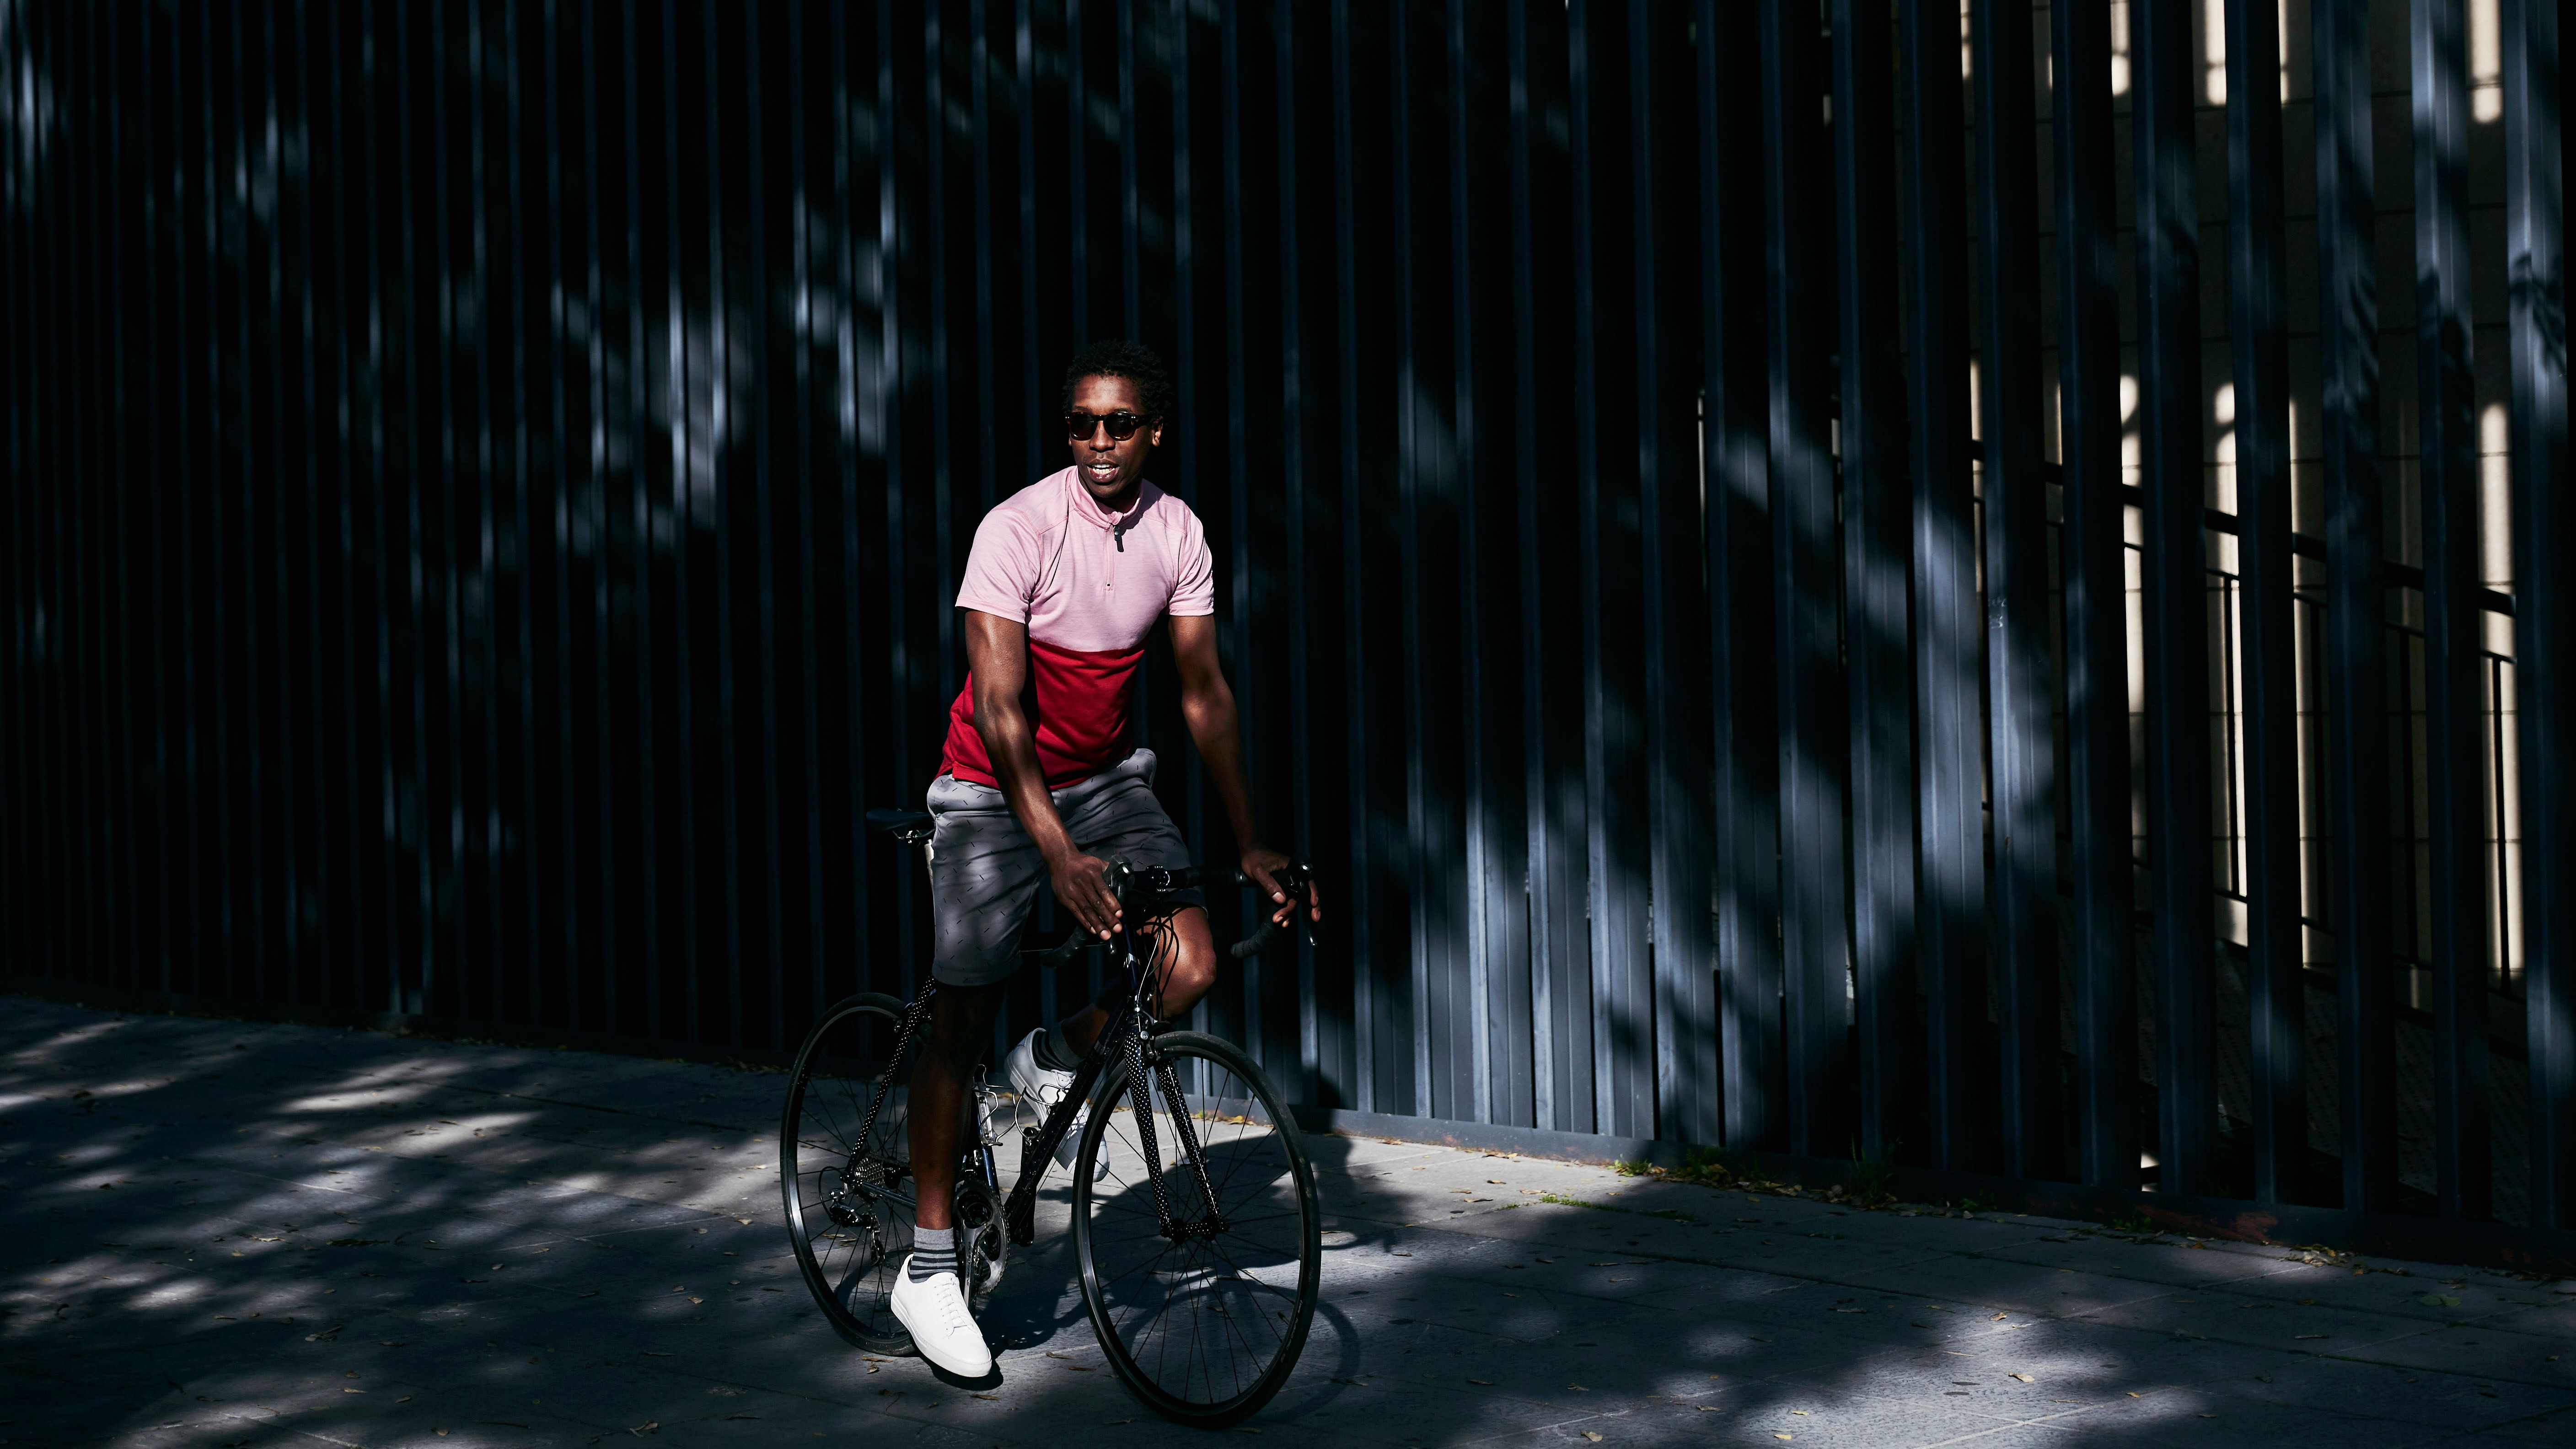 The city jersey is made from a very fine-knit merino wool, designed to work well in summer